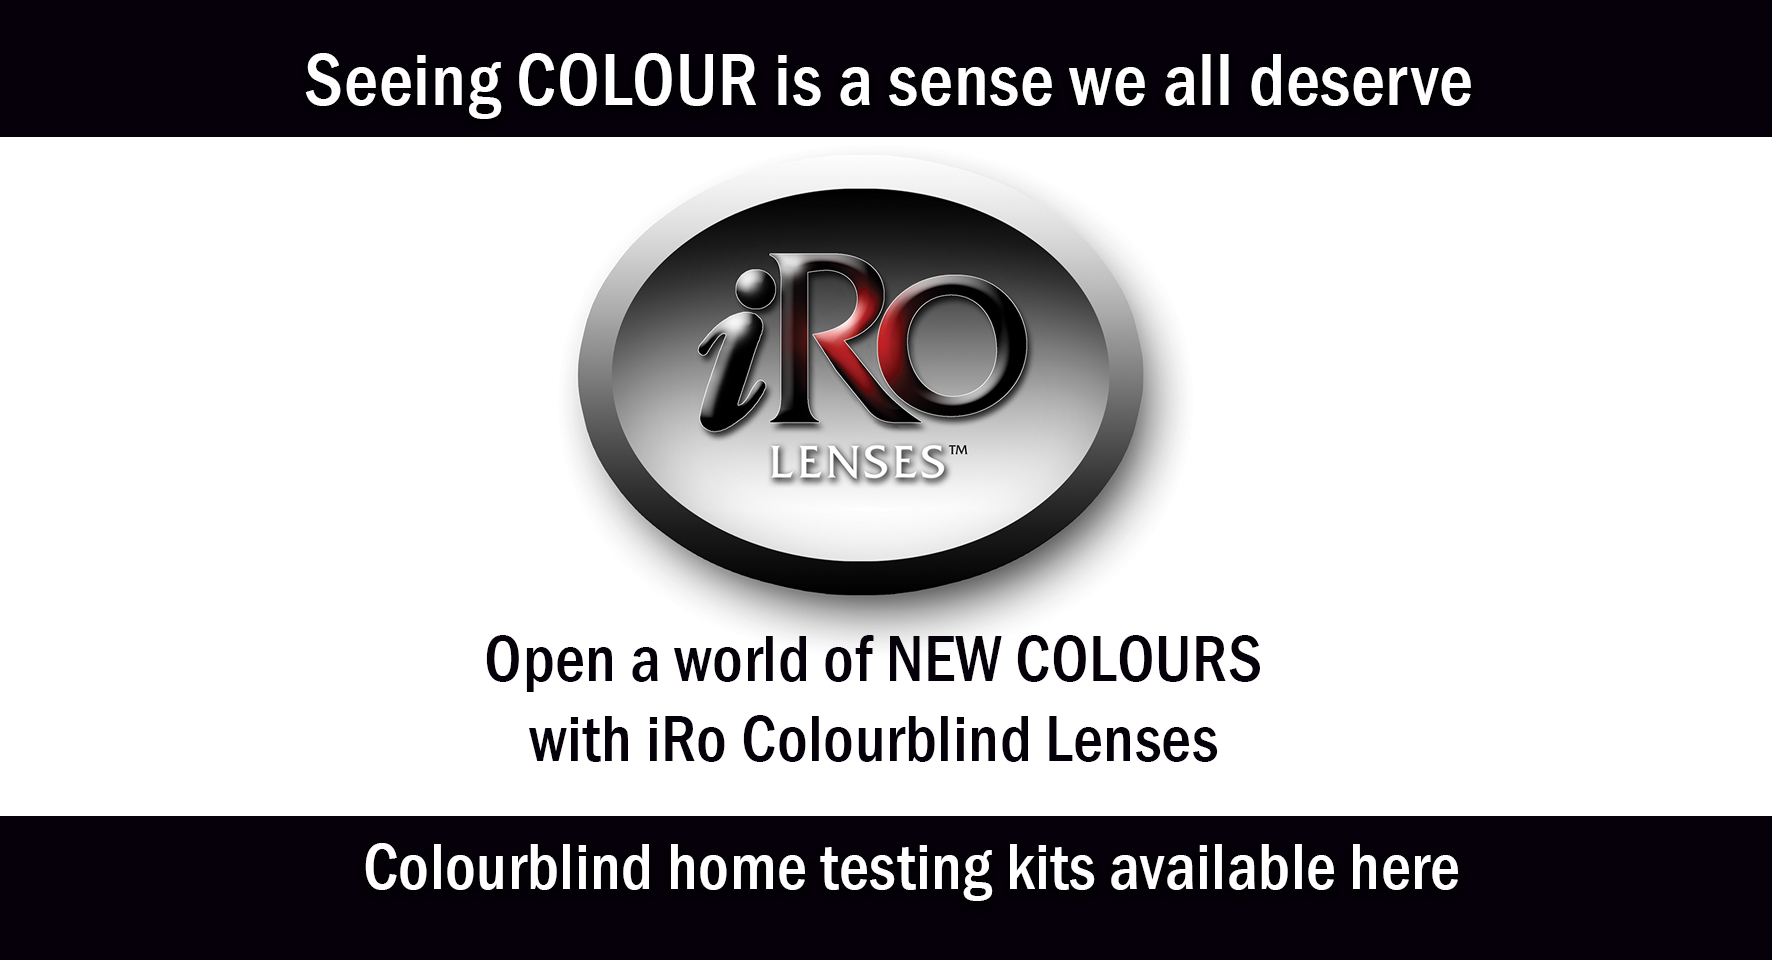 See colours for the first time only $15*